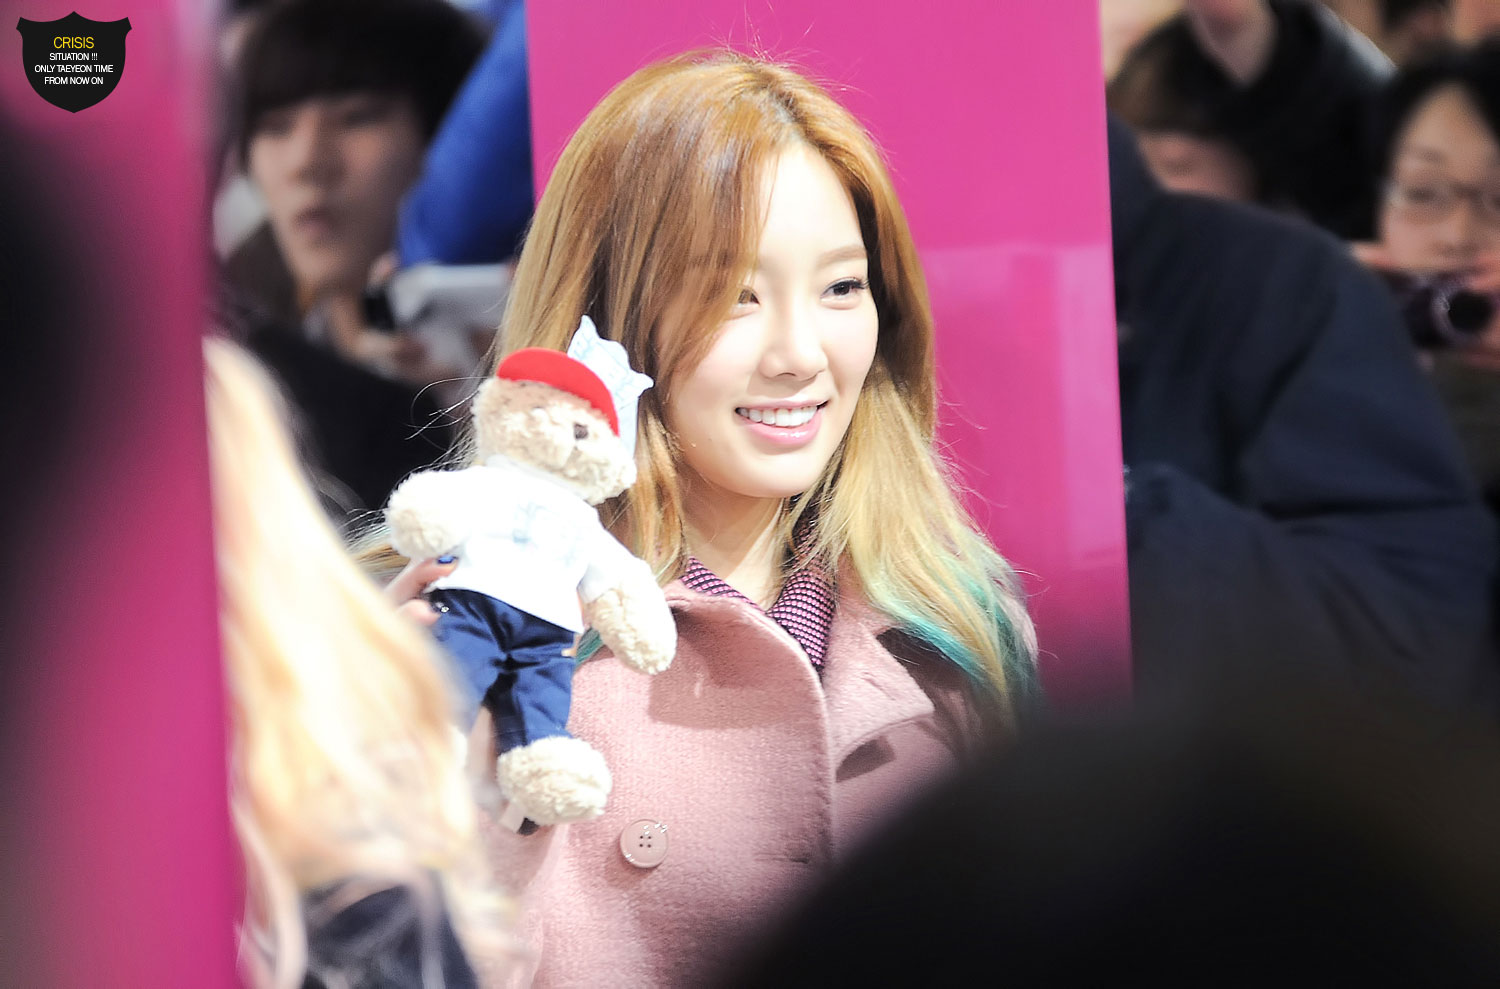 Snsd Taeyeon Lotte pop up store